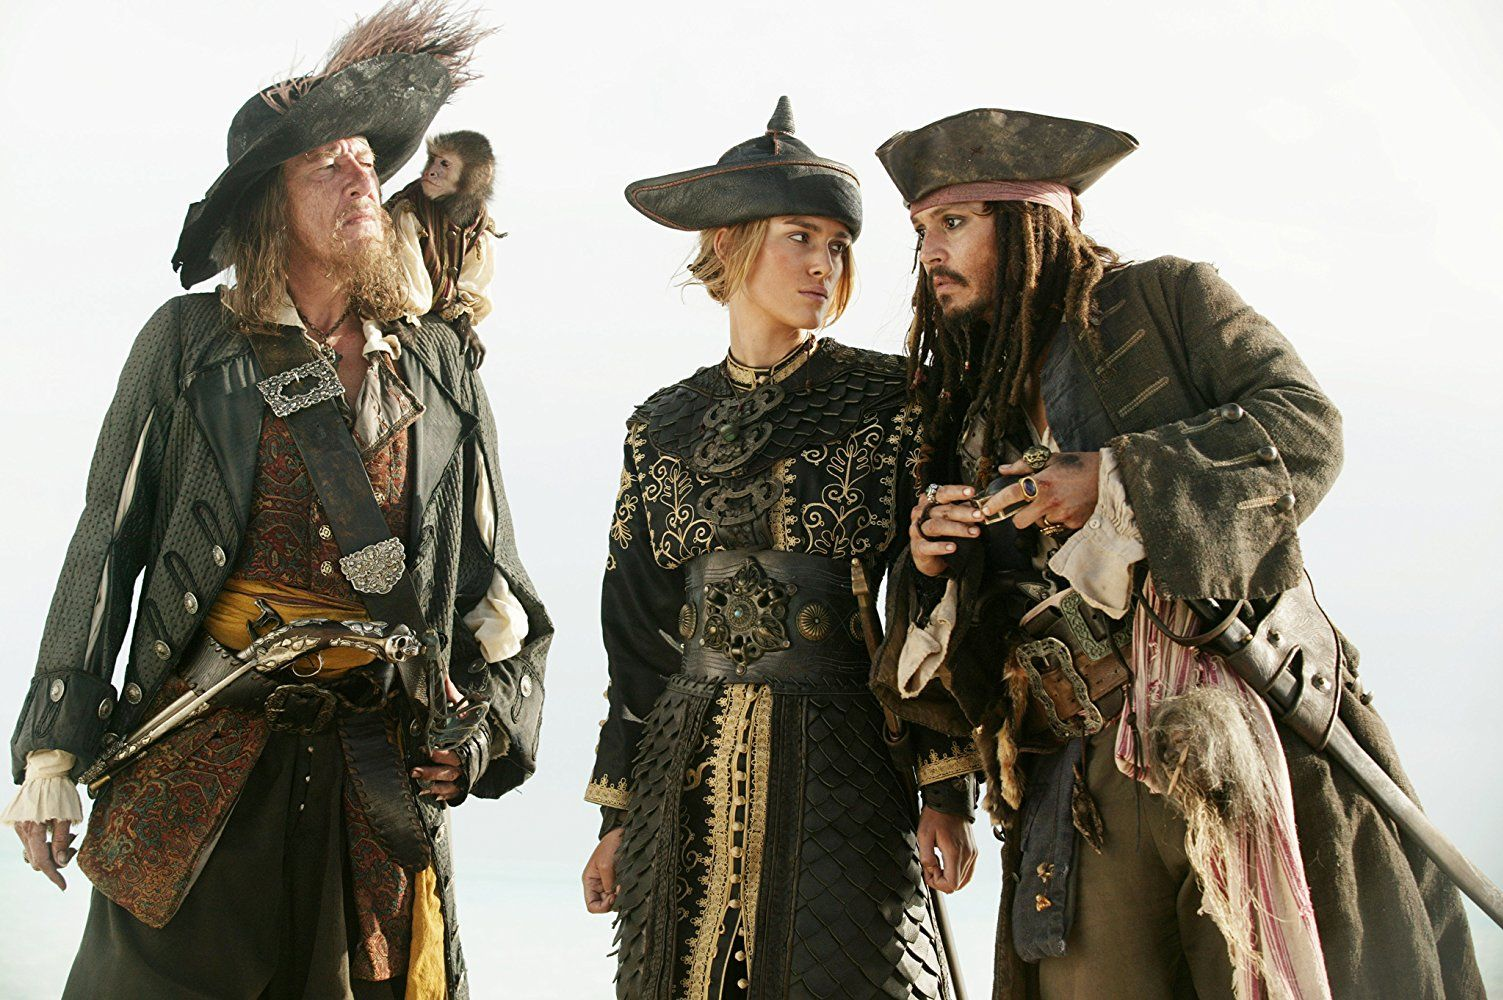 21 Pirates of the Caribbean- At World's End